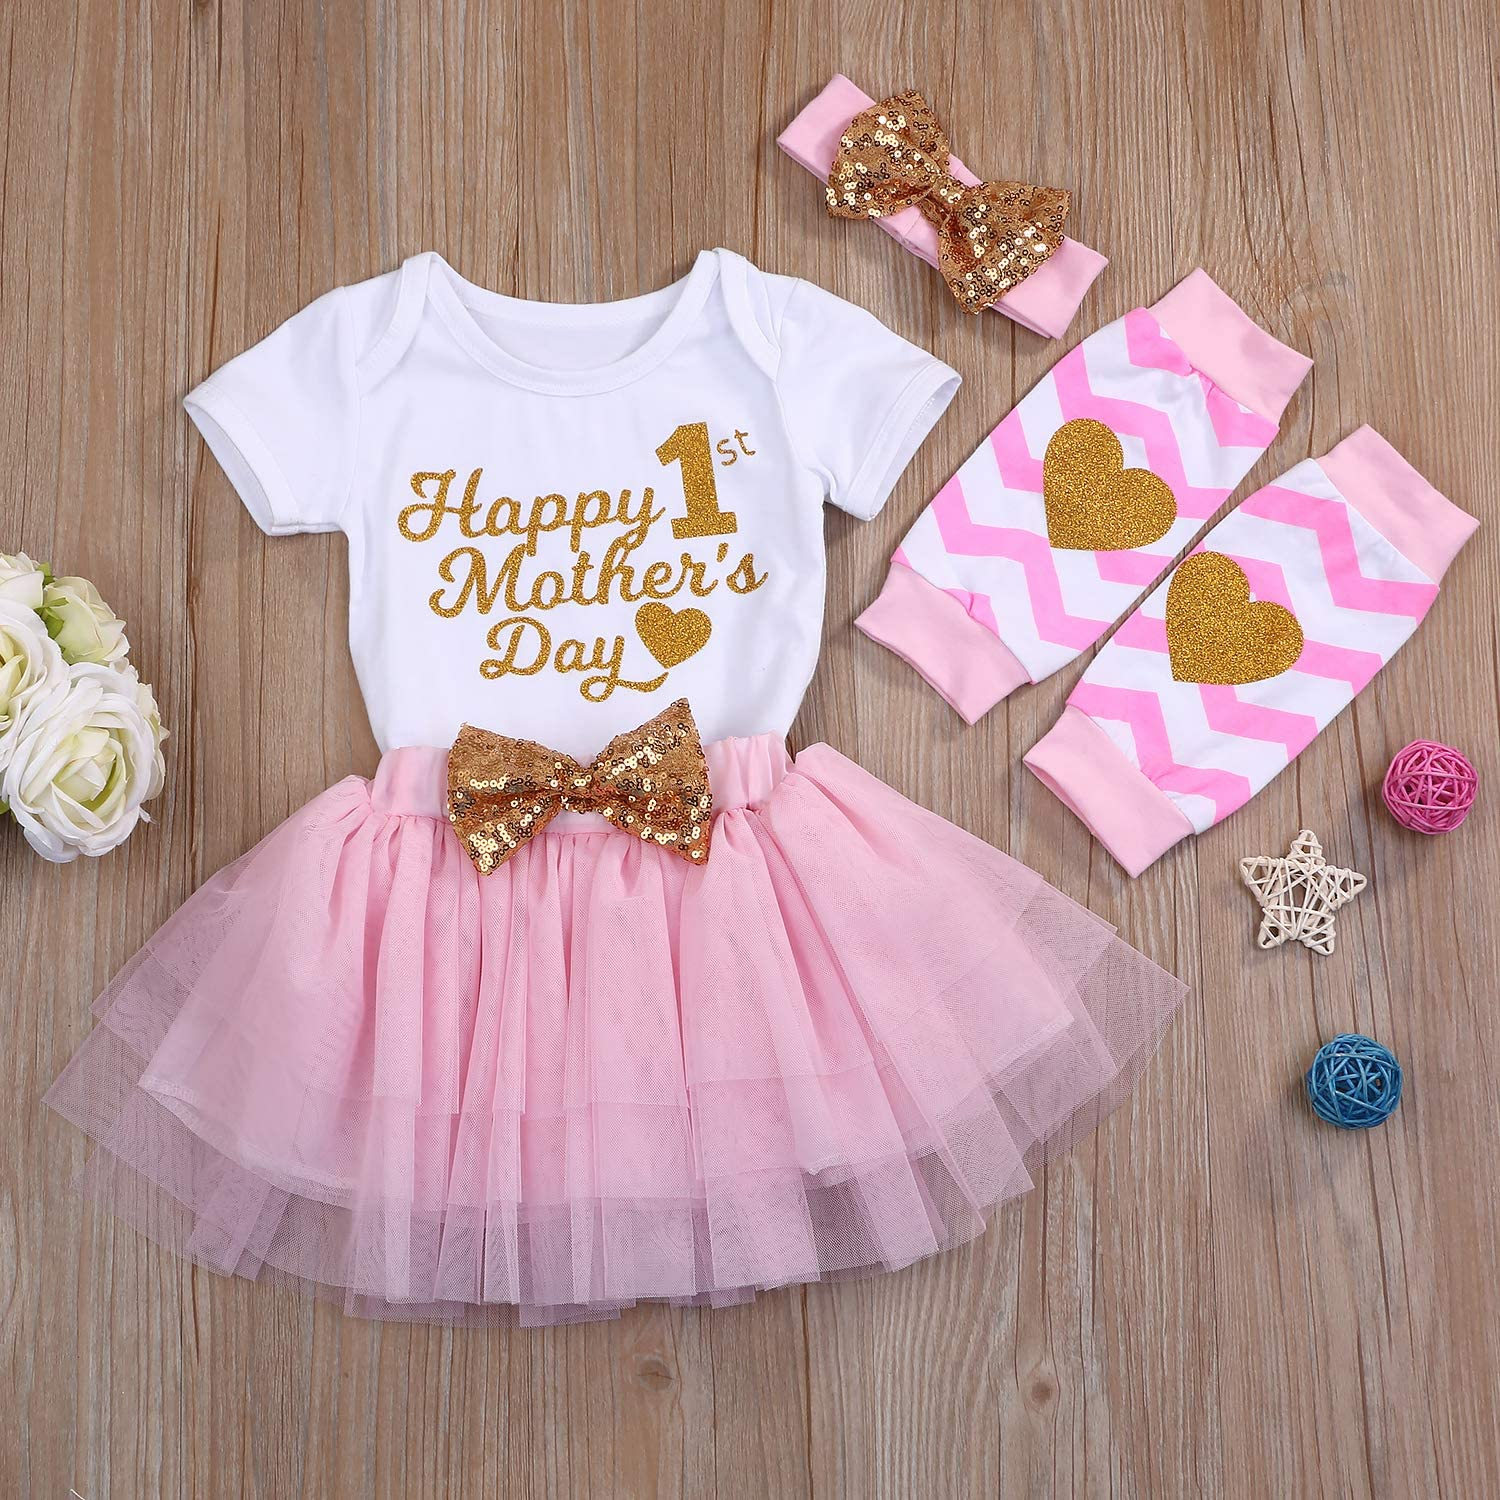 Baby Girls Skirt Set Short Sleeve Romper+Bow Tutu Dress+Headband+Leg Warmers 4Pcs Outfits